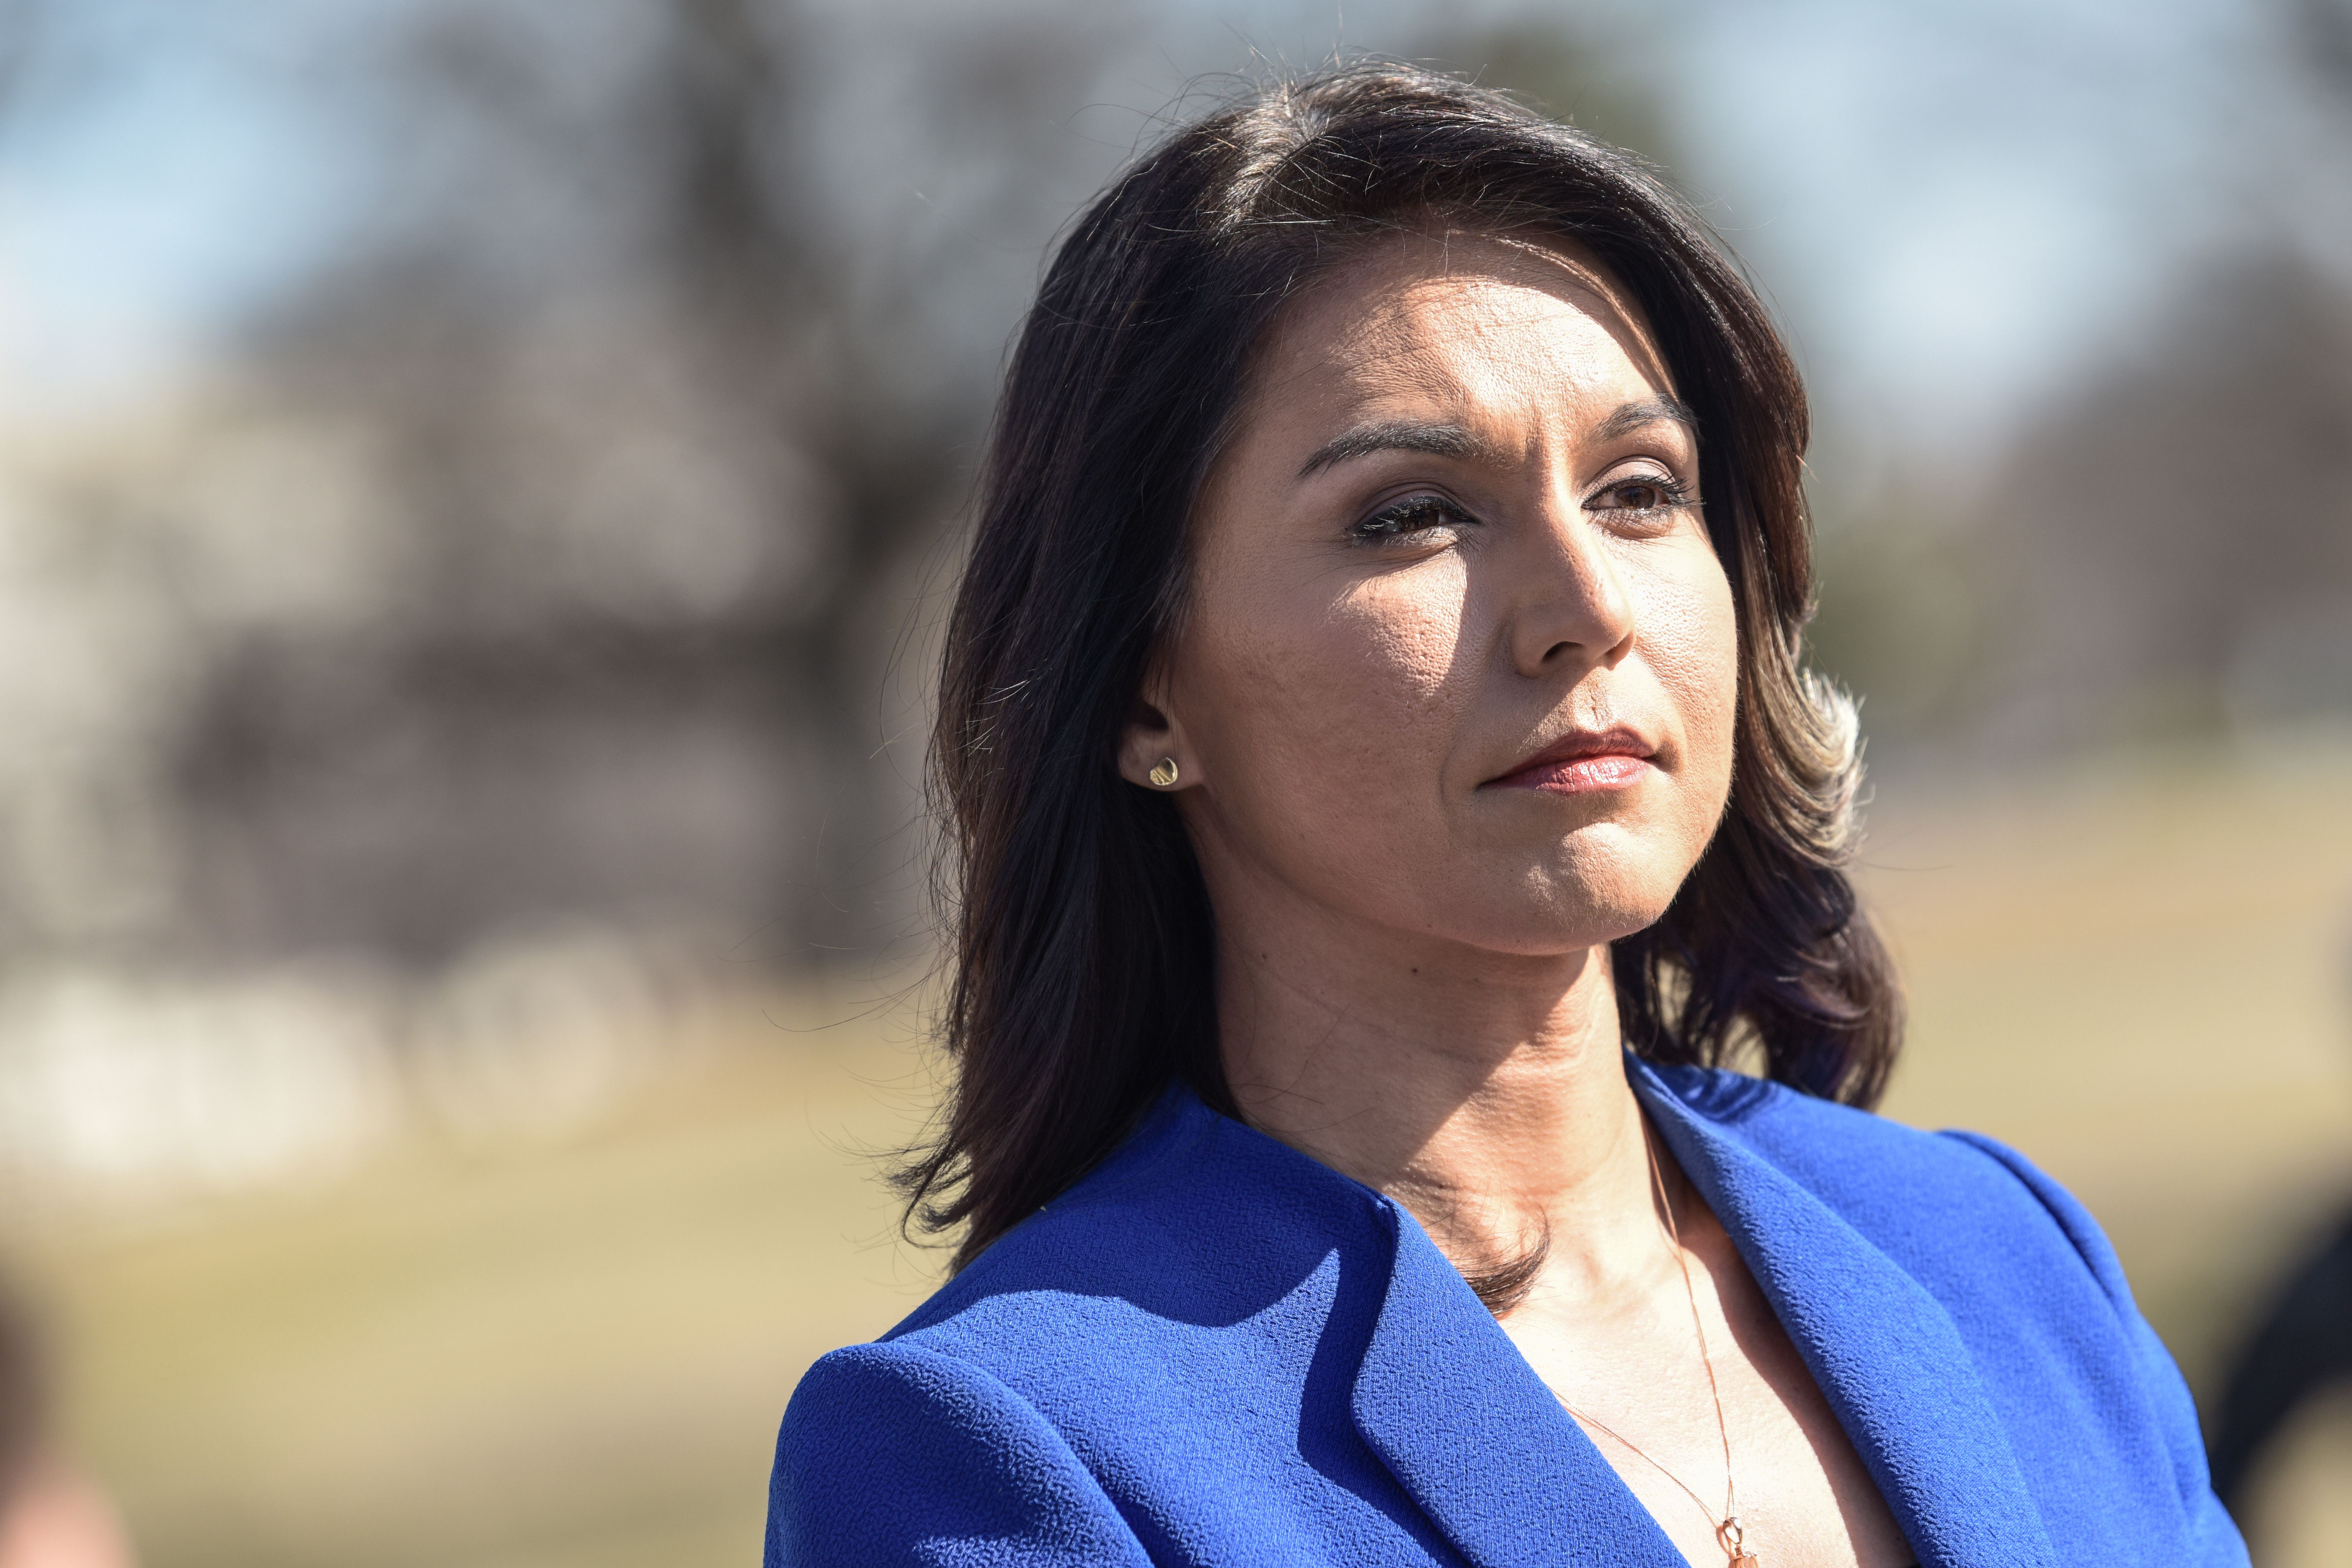 Democrat Congresswoman Tulsi Gabbard from Hawaii, an official candidate for the Democratic Primaries of the 2020 US Presidential election, gives a press conference in Washington DC on February 15, 2019.